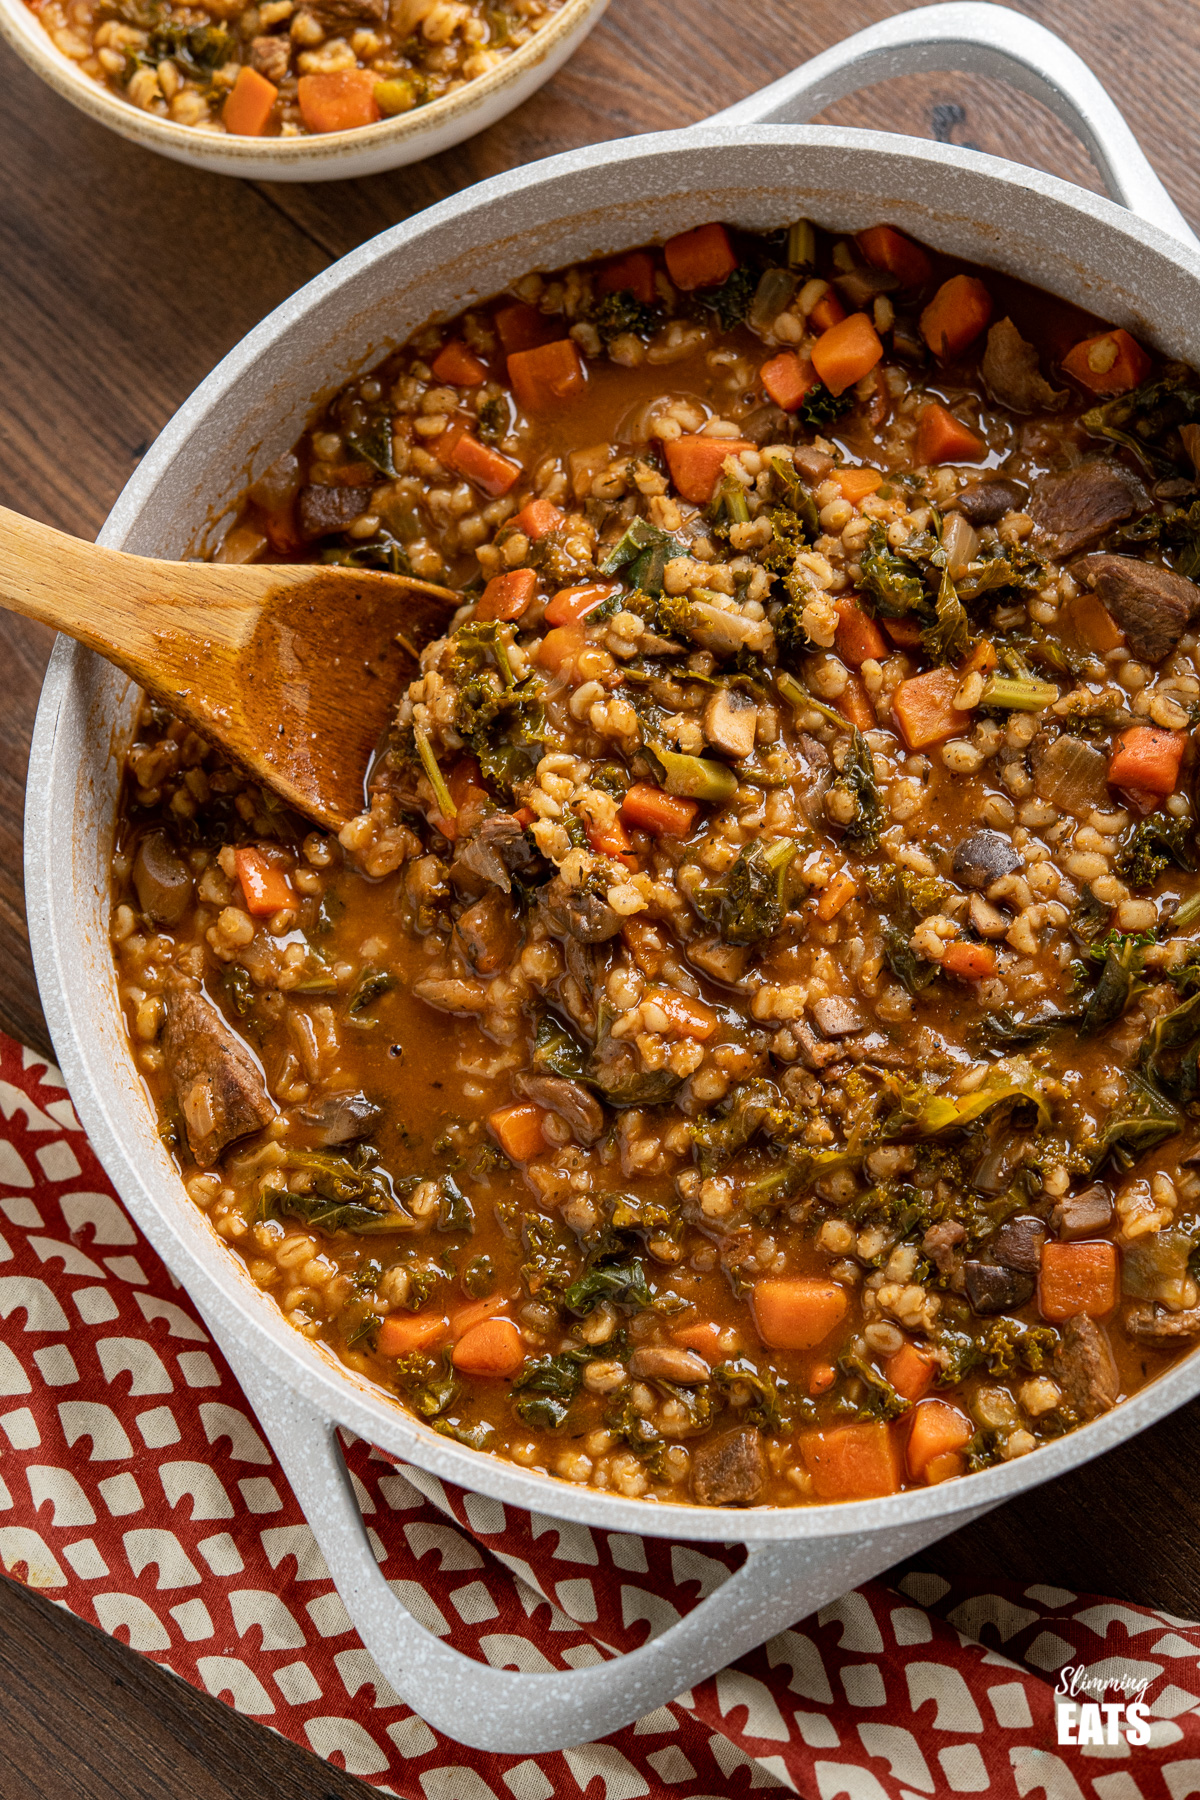 Beef and barley stew in pot with wooden spoon, bowl of stew in background